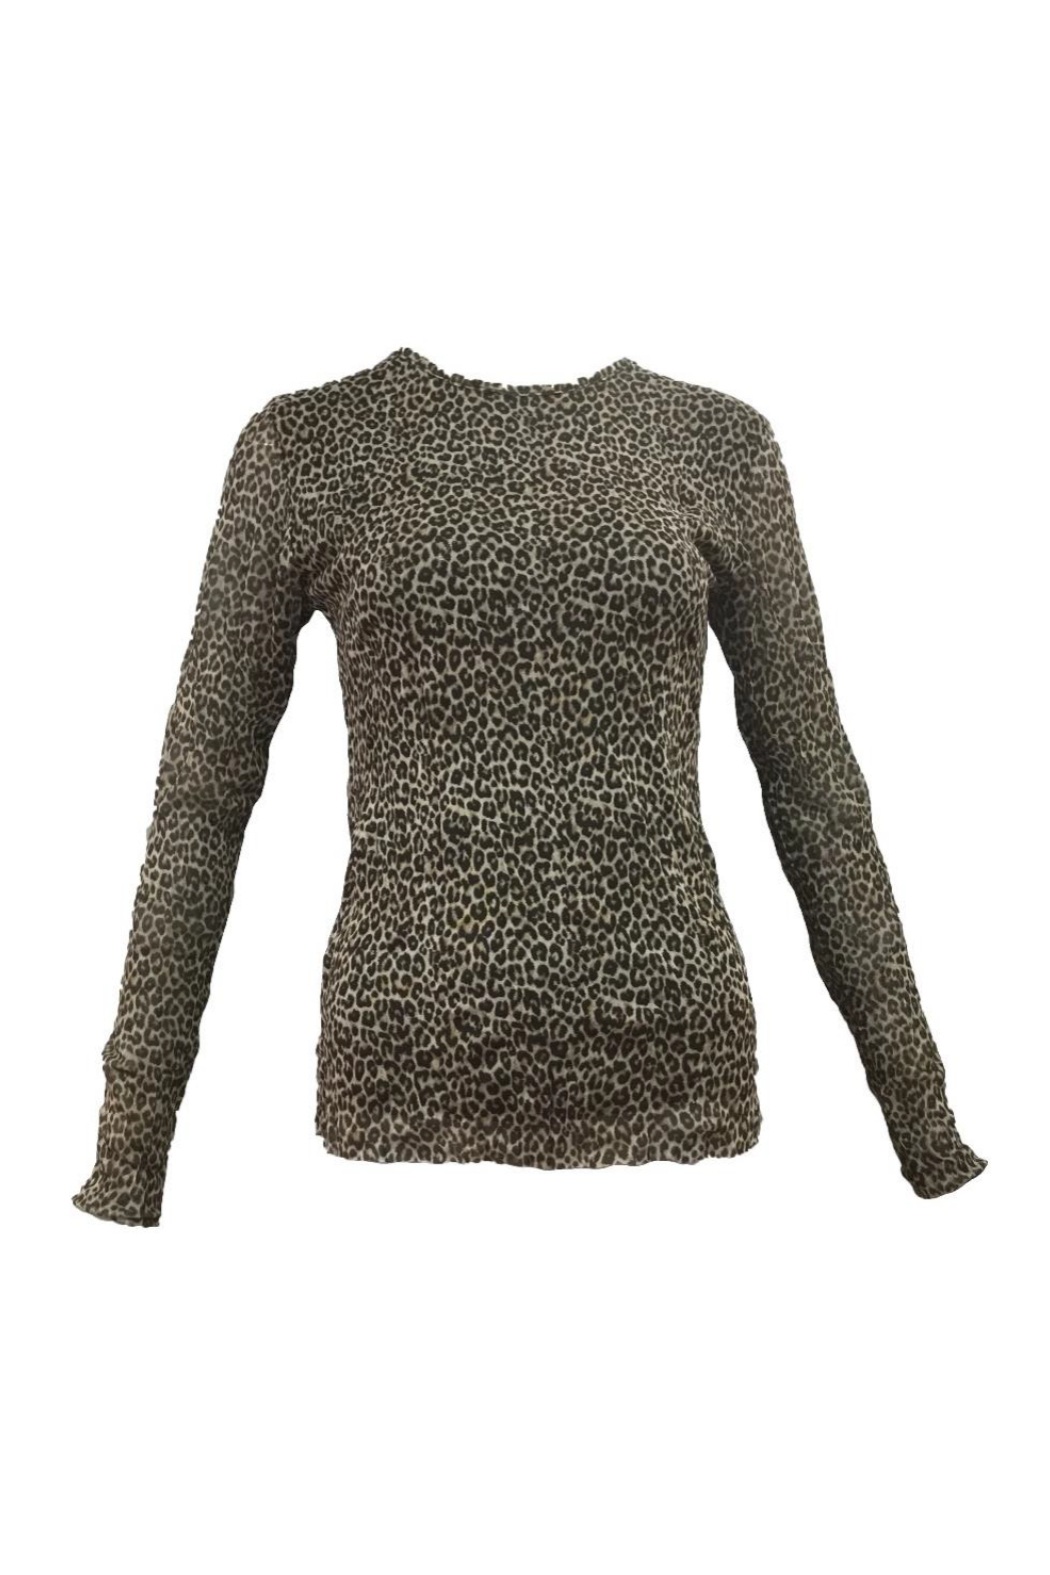 Femme Fatale Double Layer Leopard Top - Front Cropped Image